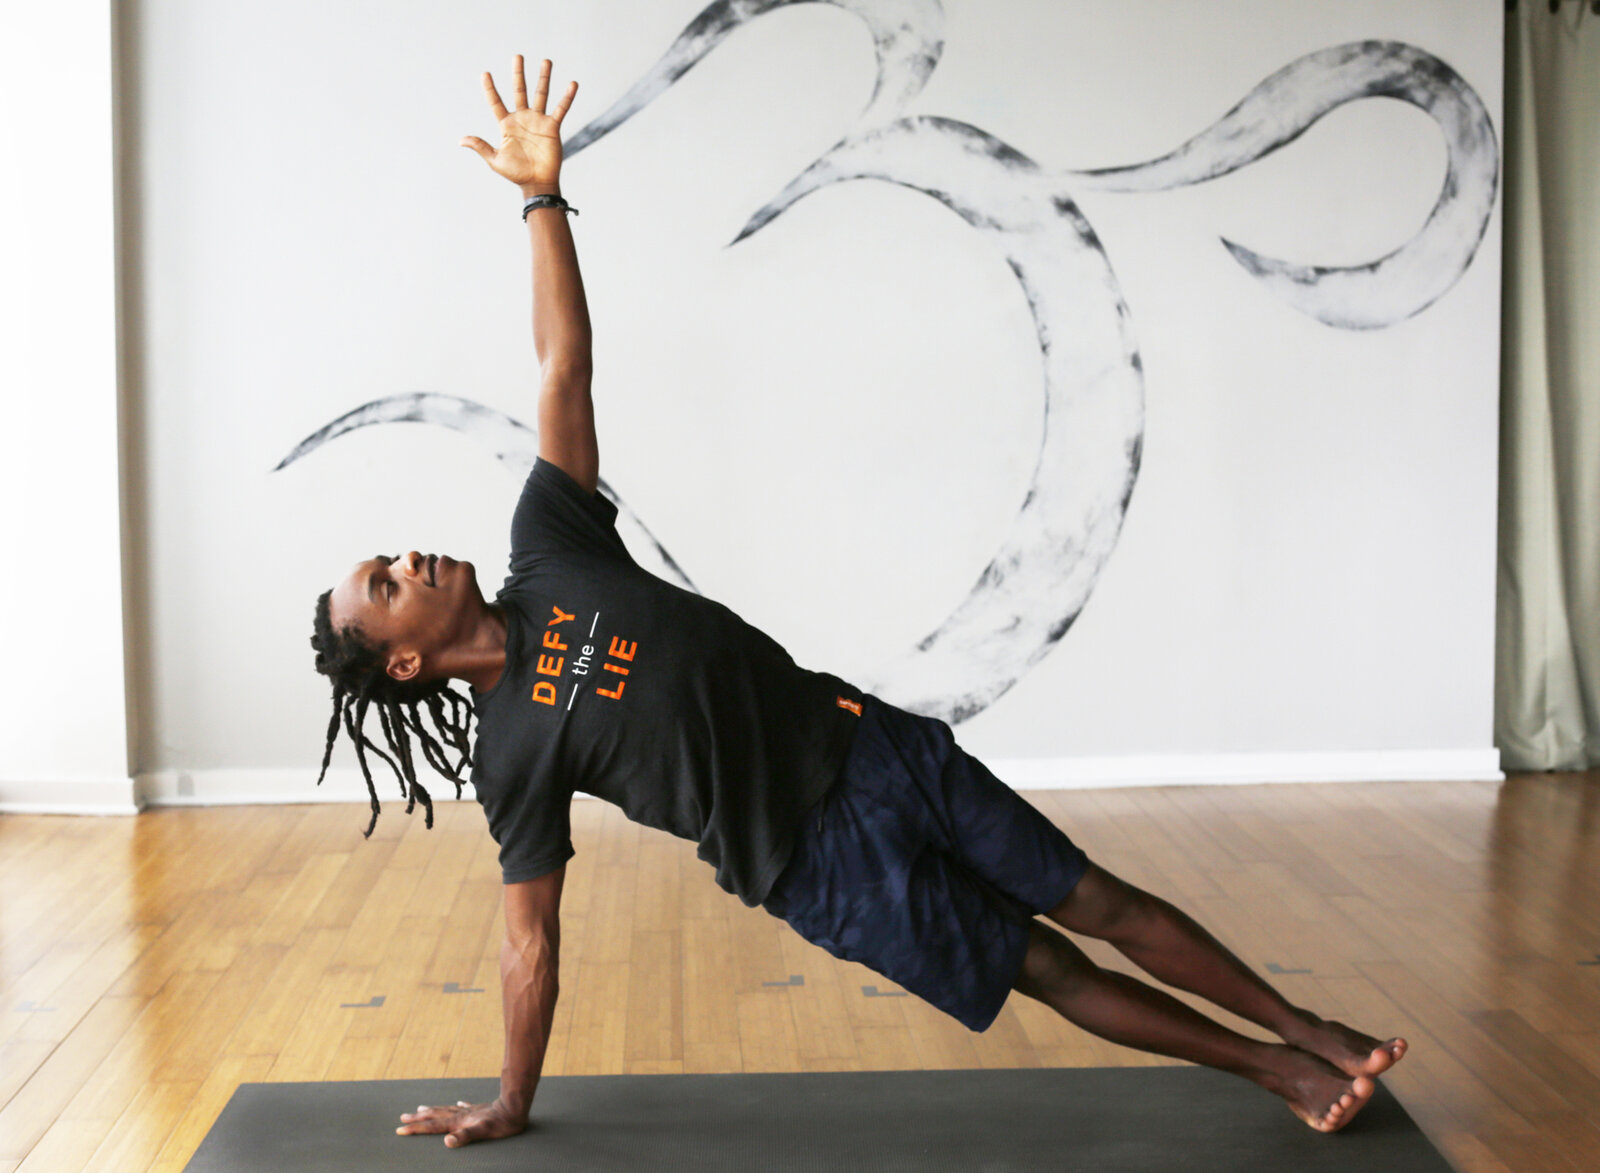 Walter Mugbe, a teacher with the Africa Yoga Project, demonstrates side plank in the Bethesda, Md., studio of Down Dog Yoga.